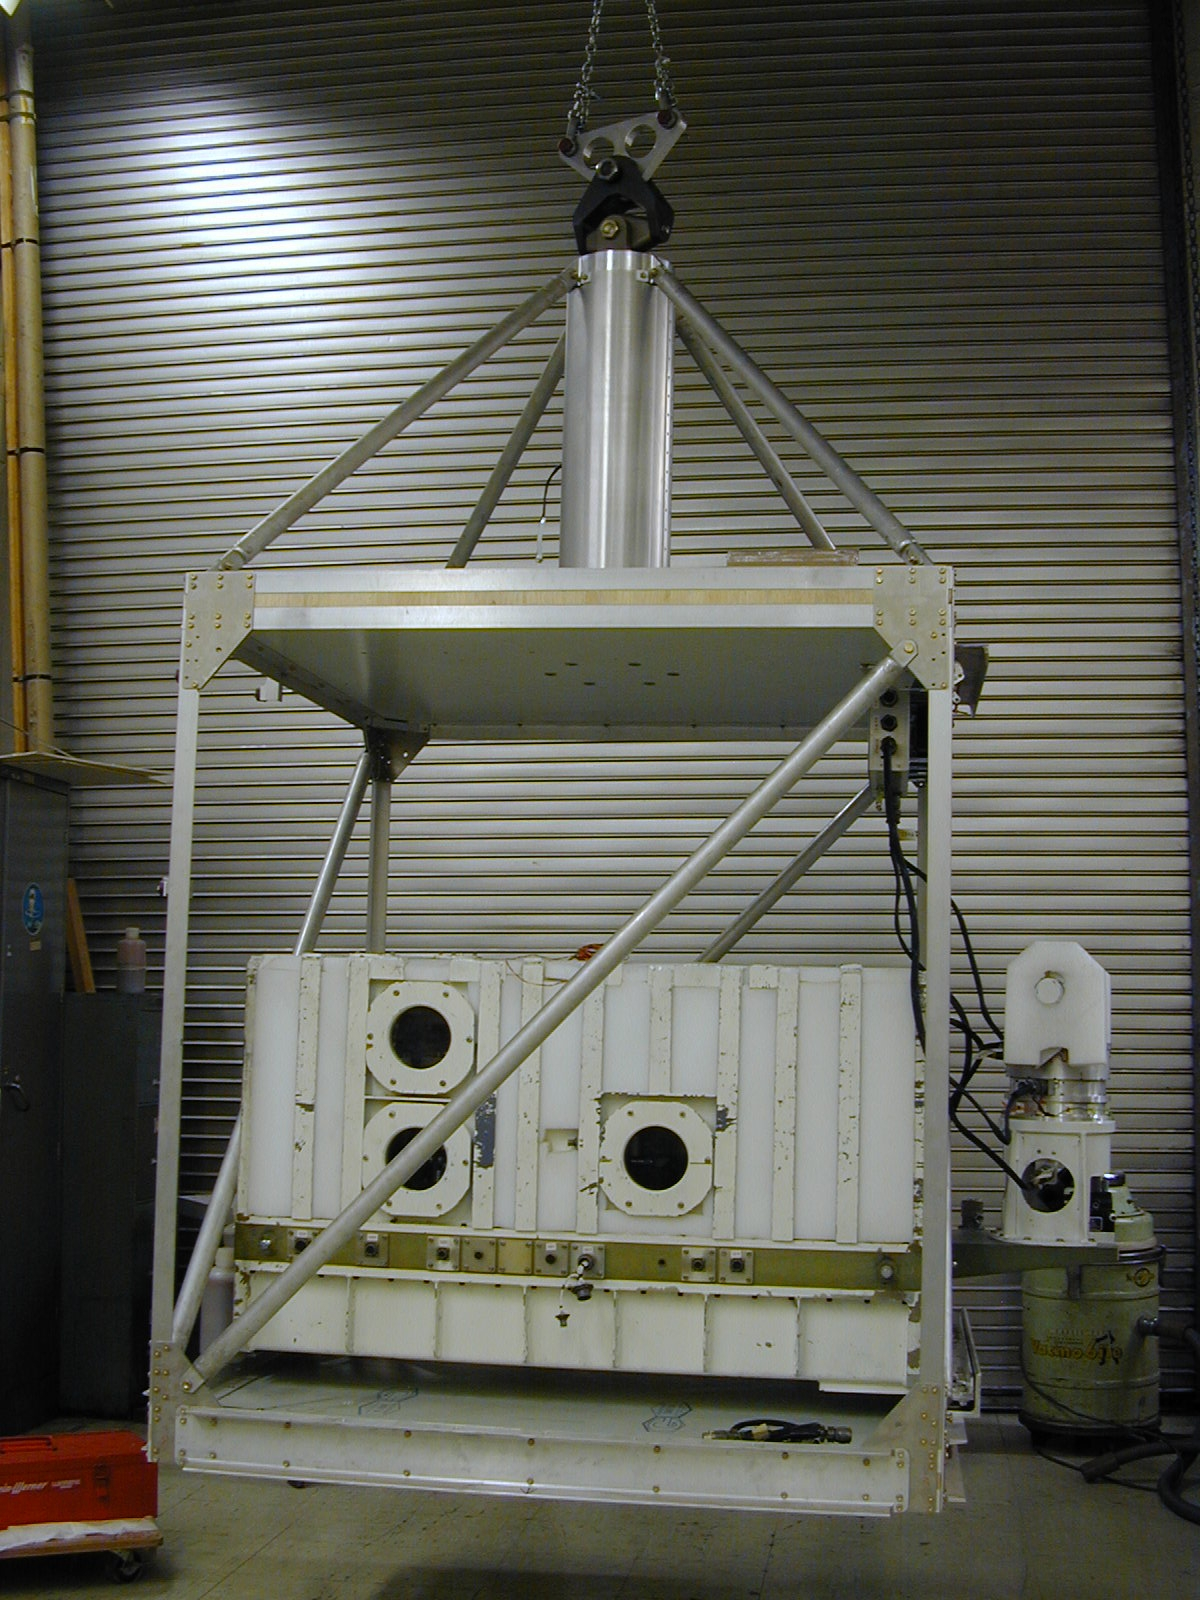 "Photos taken Oct 23, 2002 at JPL showing the 52"" bolt-together gondola on which MkIV was launched by CNES in Dec 2002 and April 2003"